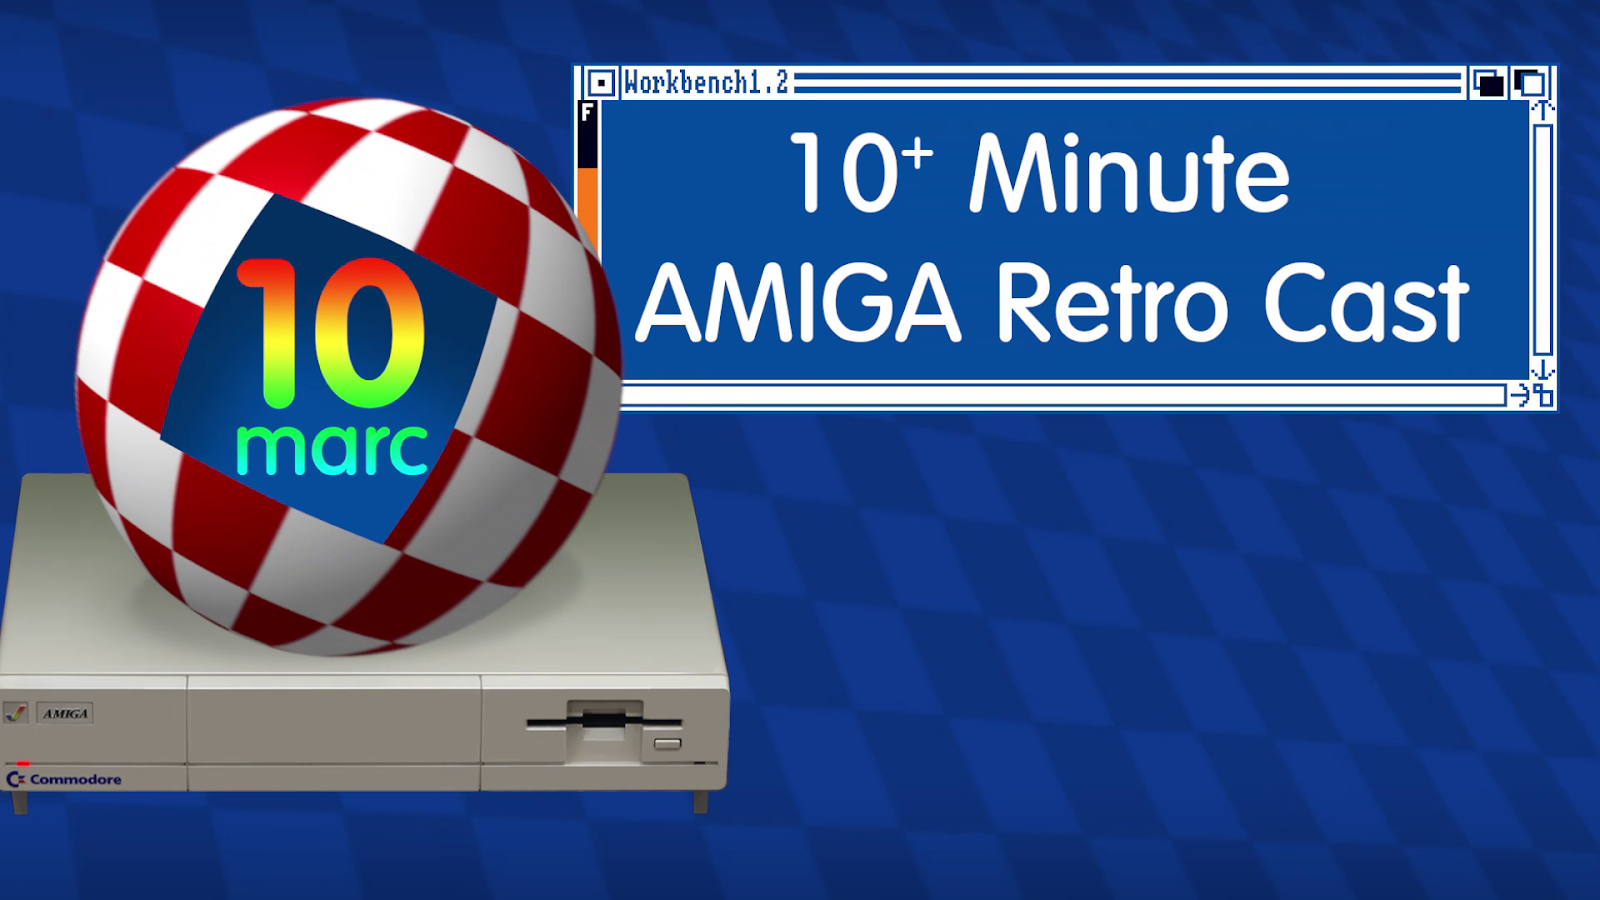 10 Minute Amiga Retro Cast